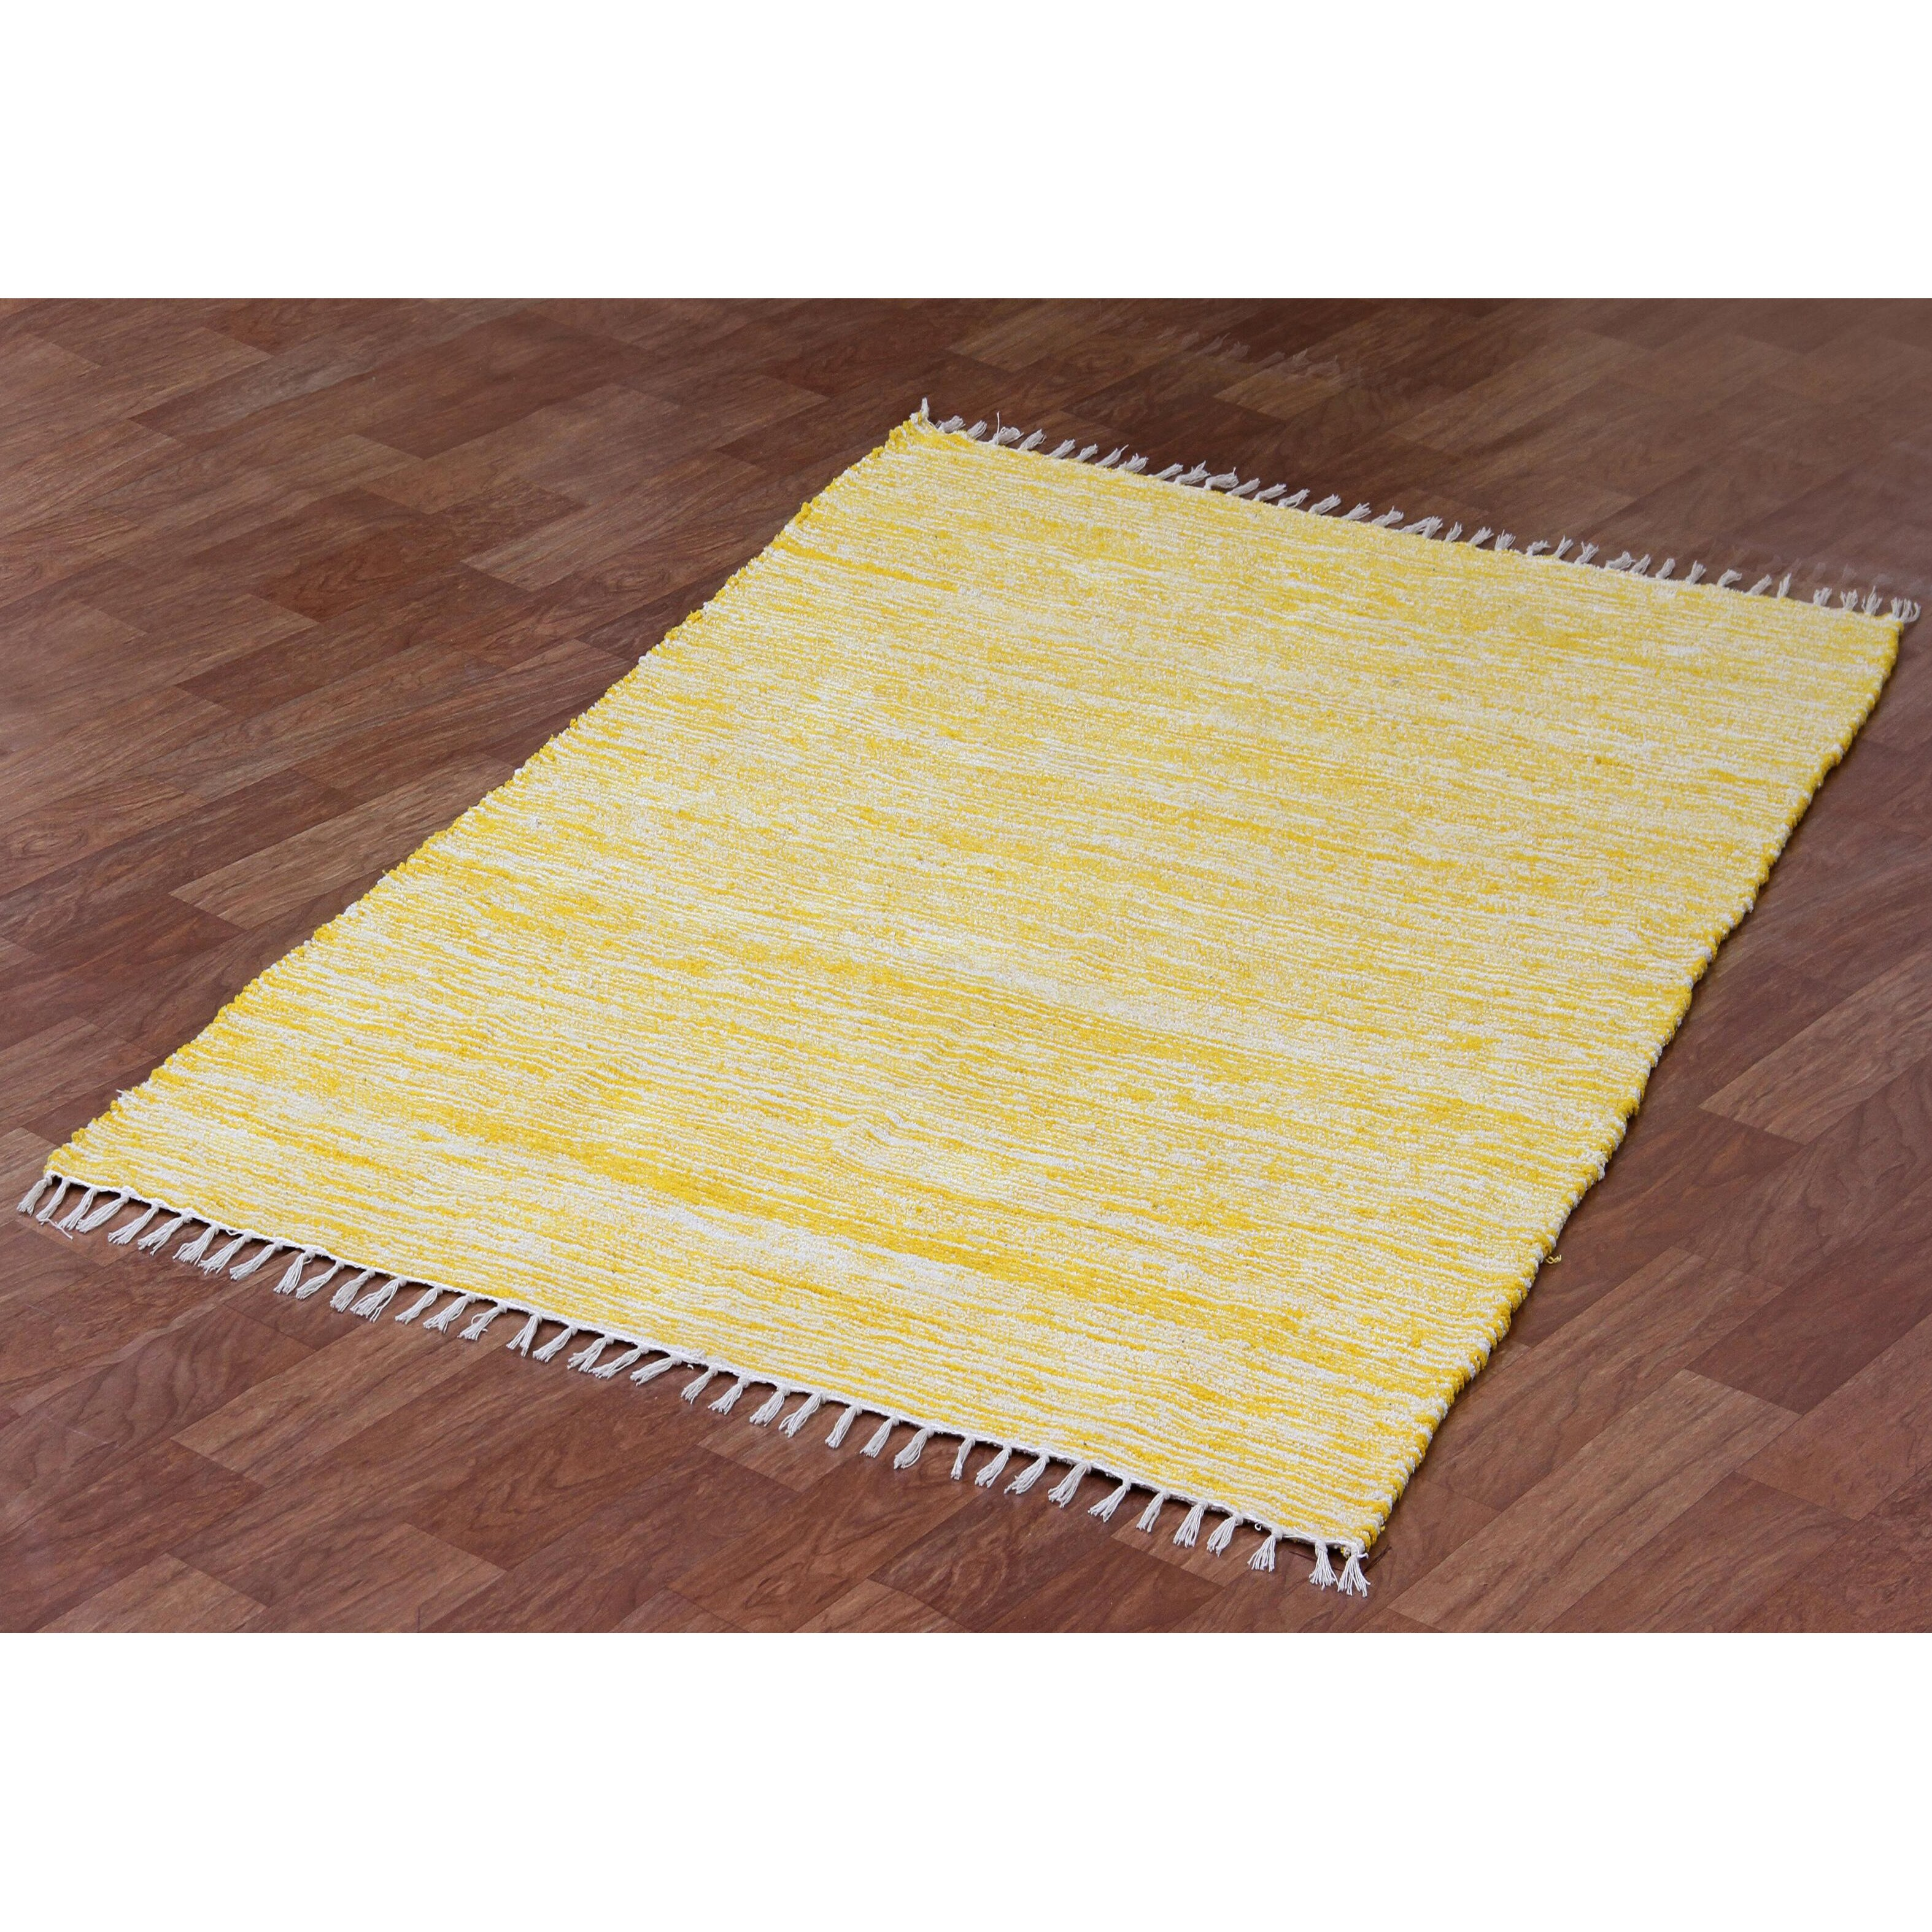 complex yellow area rug by st croix